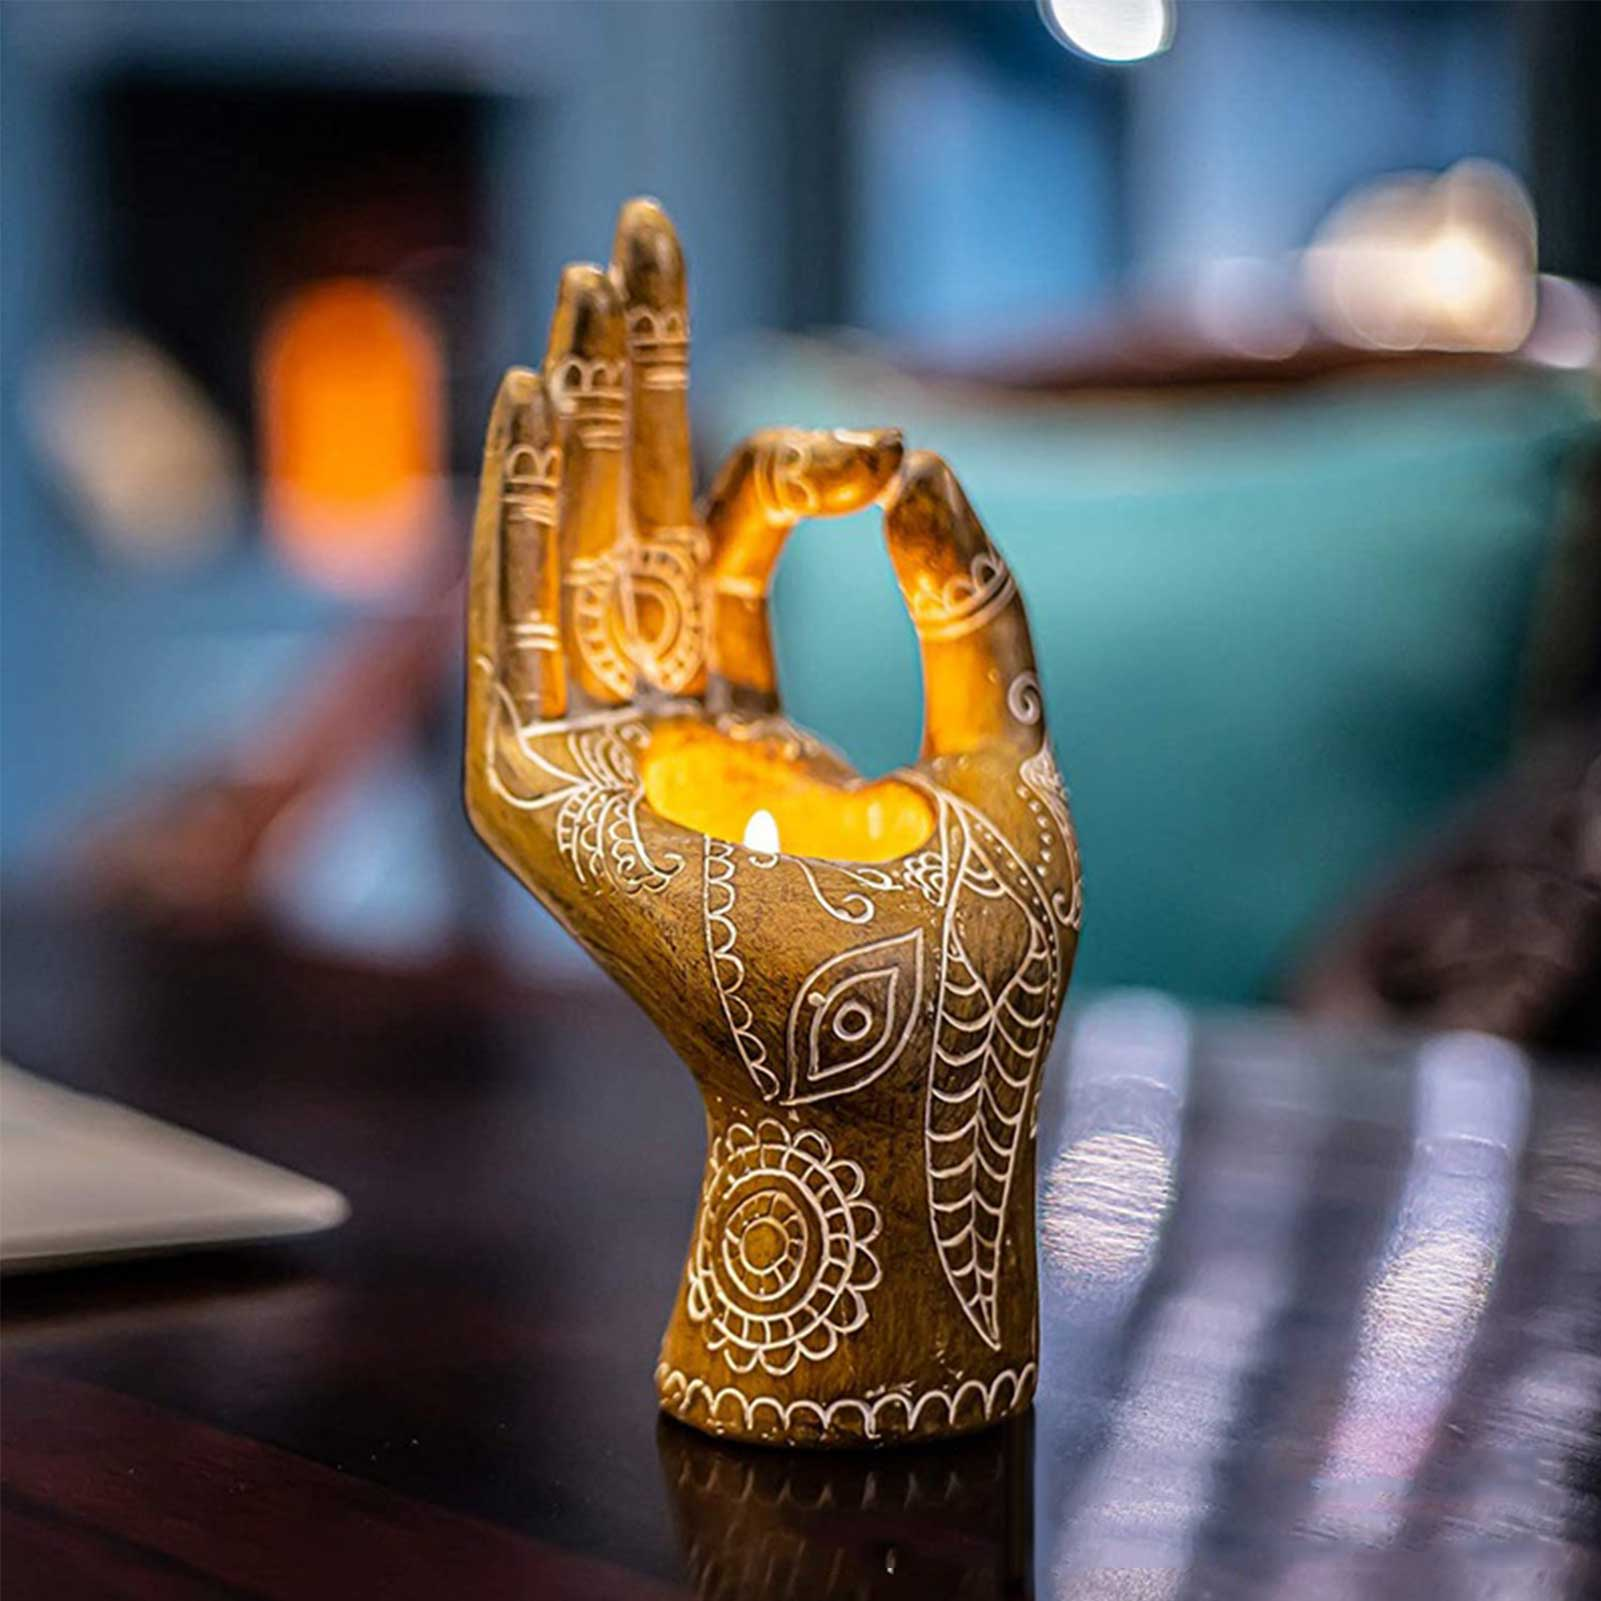 1pc Buddha Candle Holder Mudra Hand Tabletop Tealight Decor Collectible Figurines Festival Lighted Accessories Home Decoration